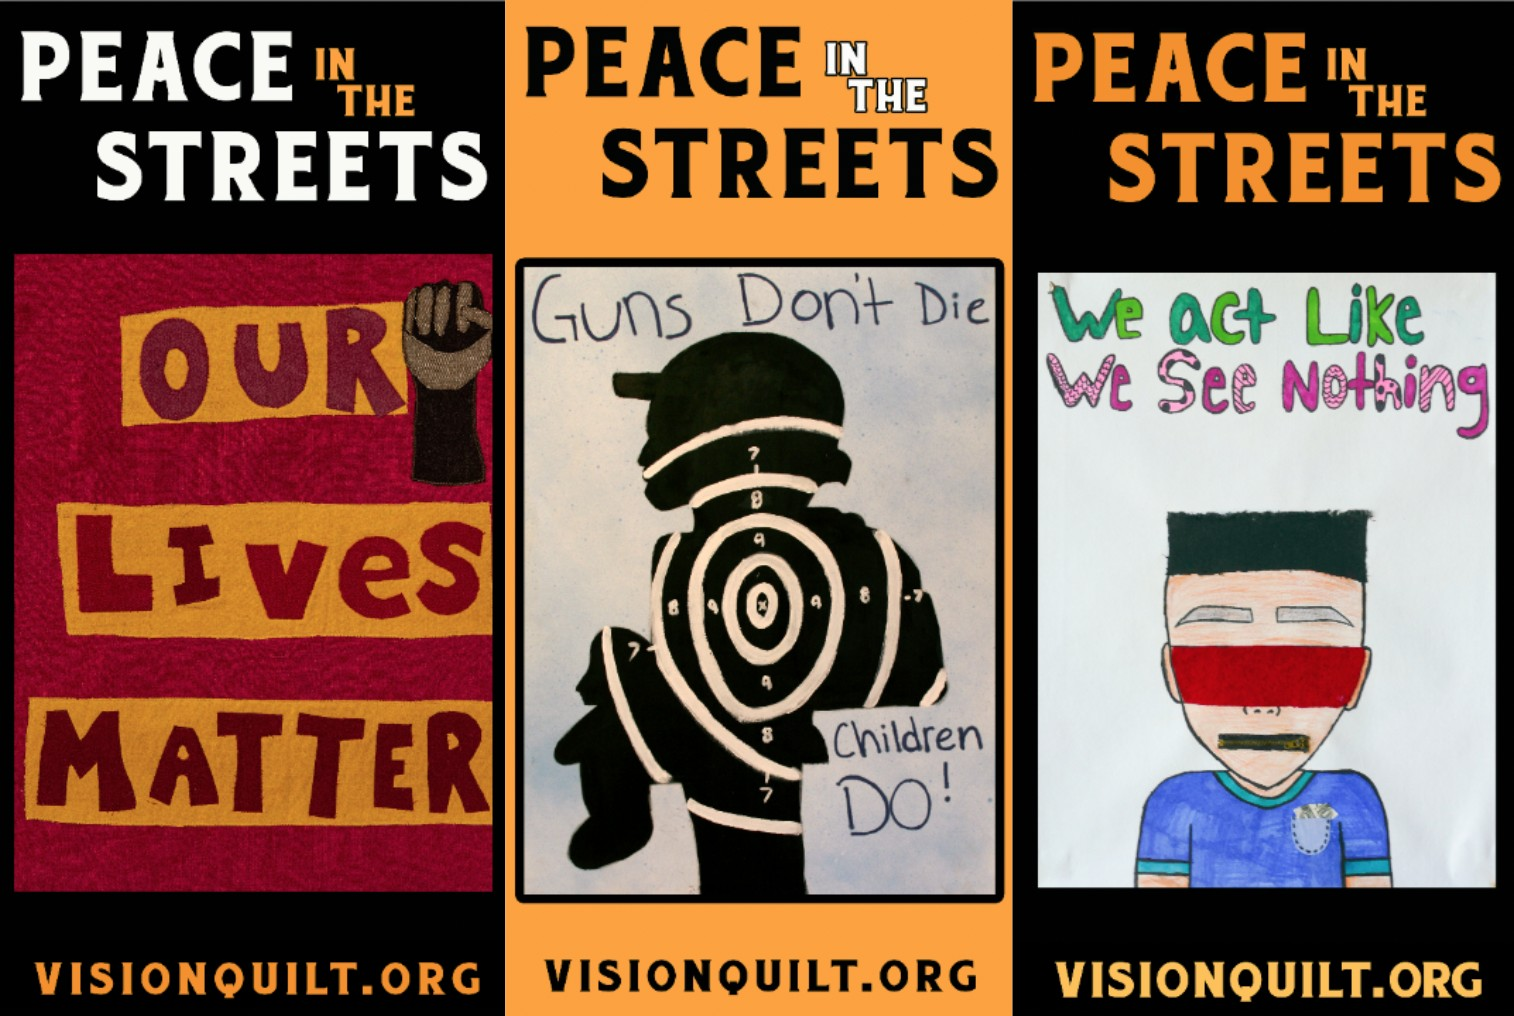 Oakland residents and civic leaders counting on art to combat gun violence and bring peace to their streets